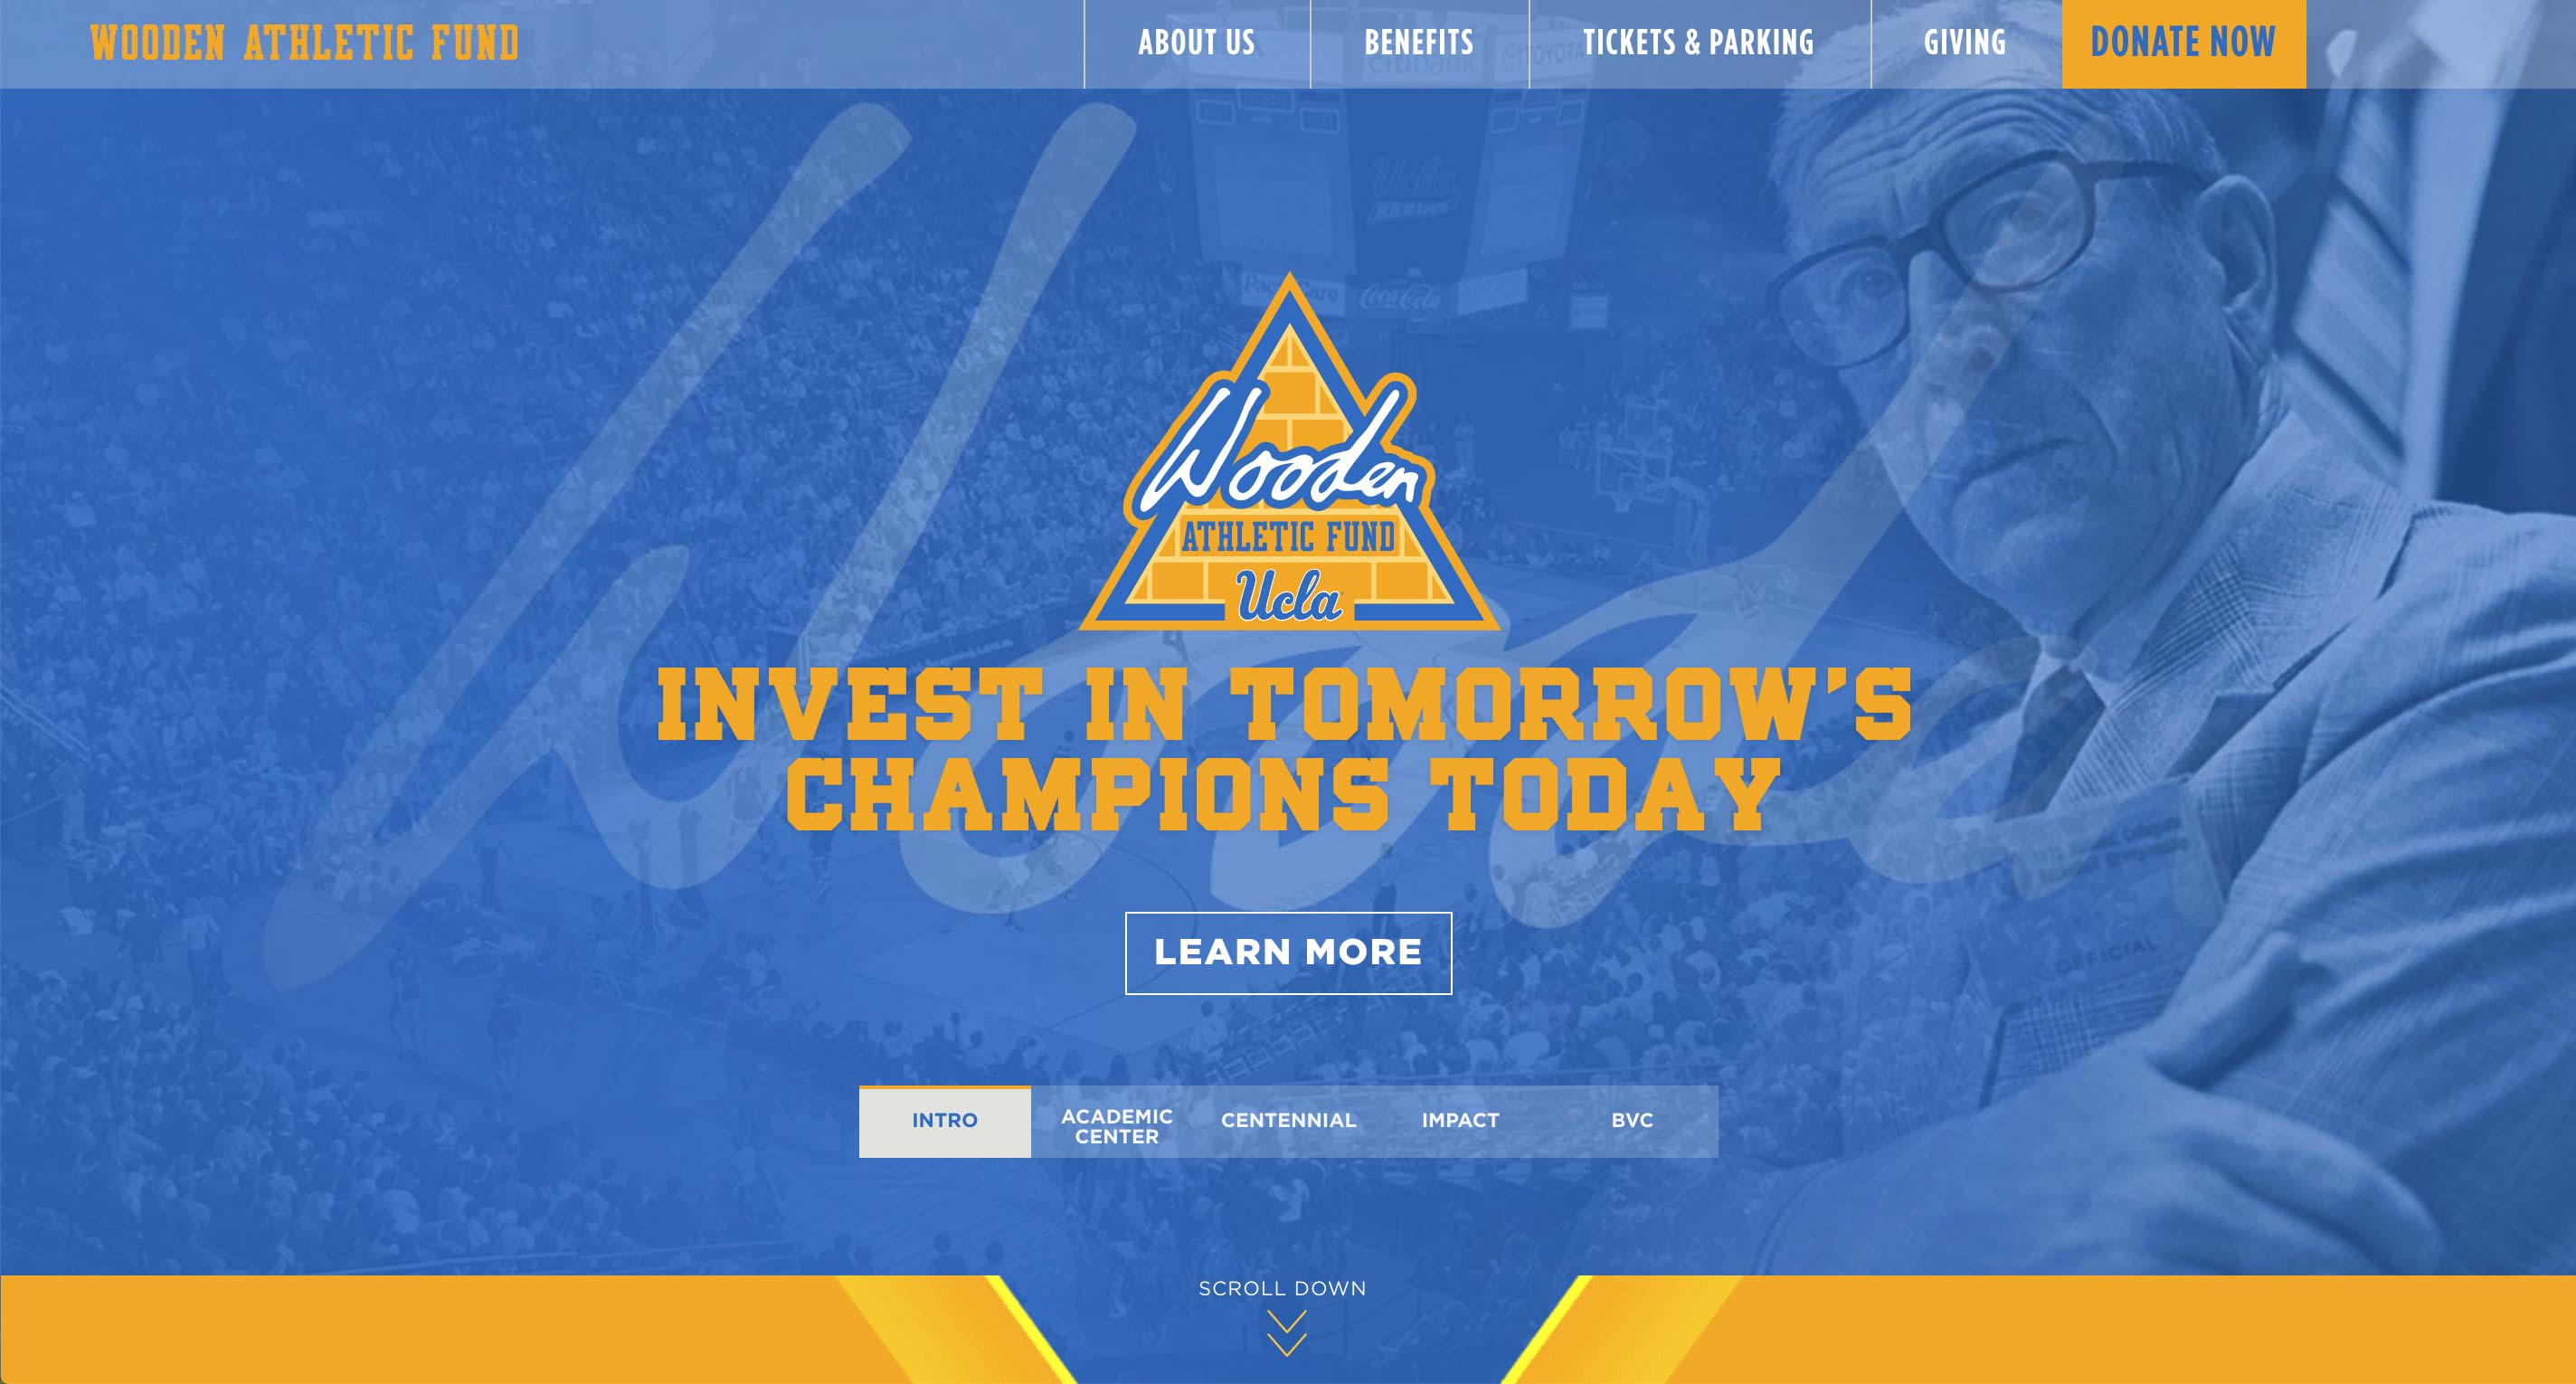 Wooden Athletic Fund Fundraising Website | <a href='http://www.woodenathleticfund.com/' target='_blank'>Visit Site <i class='nc-icon-glyph arrows-1_share-91'></i></a><br><span>UCLA</span>